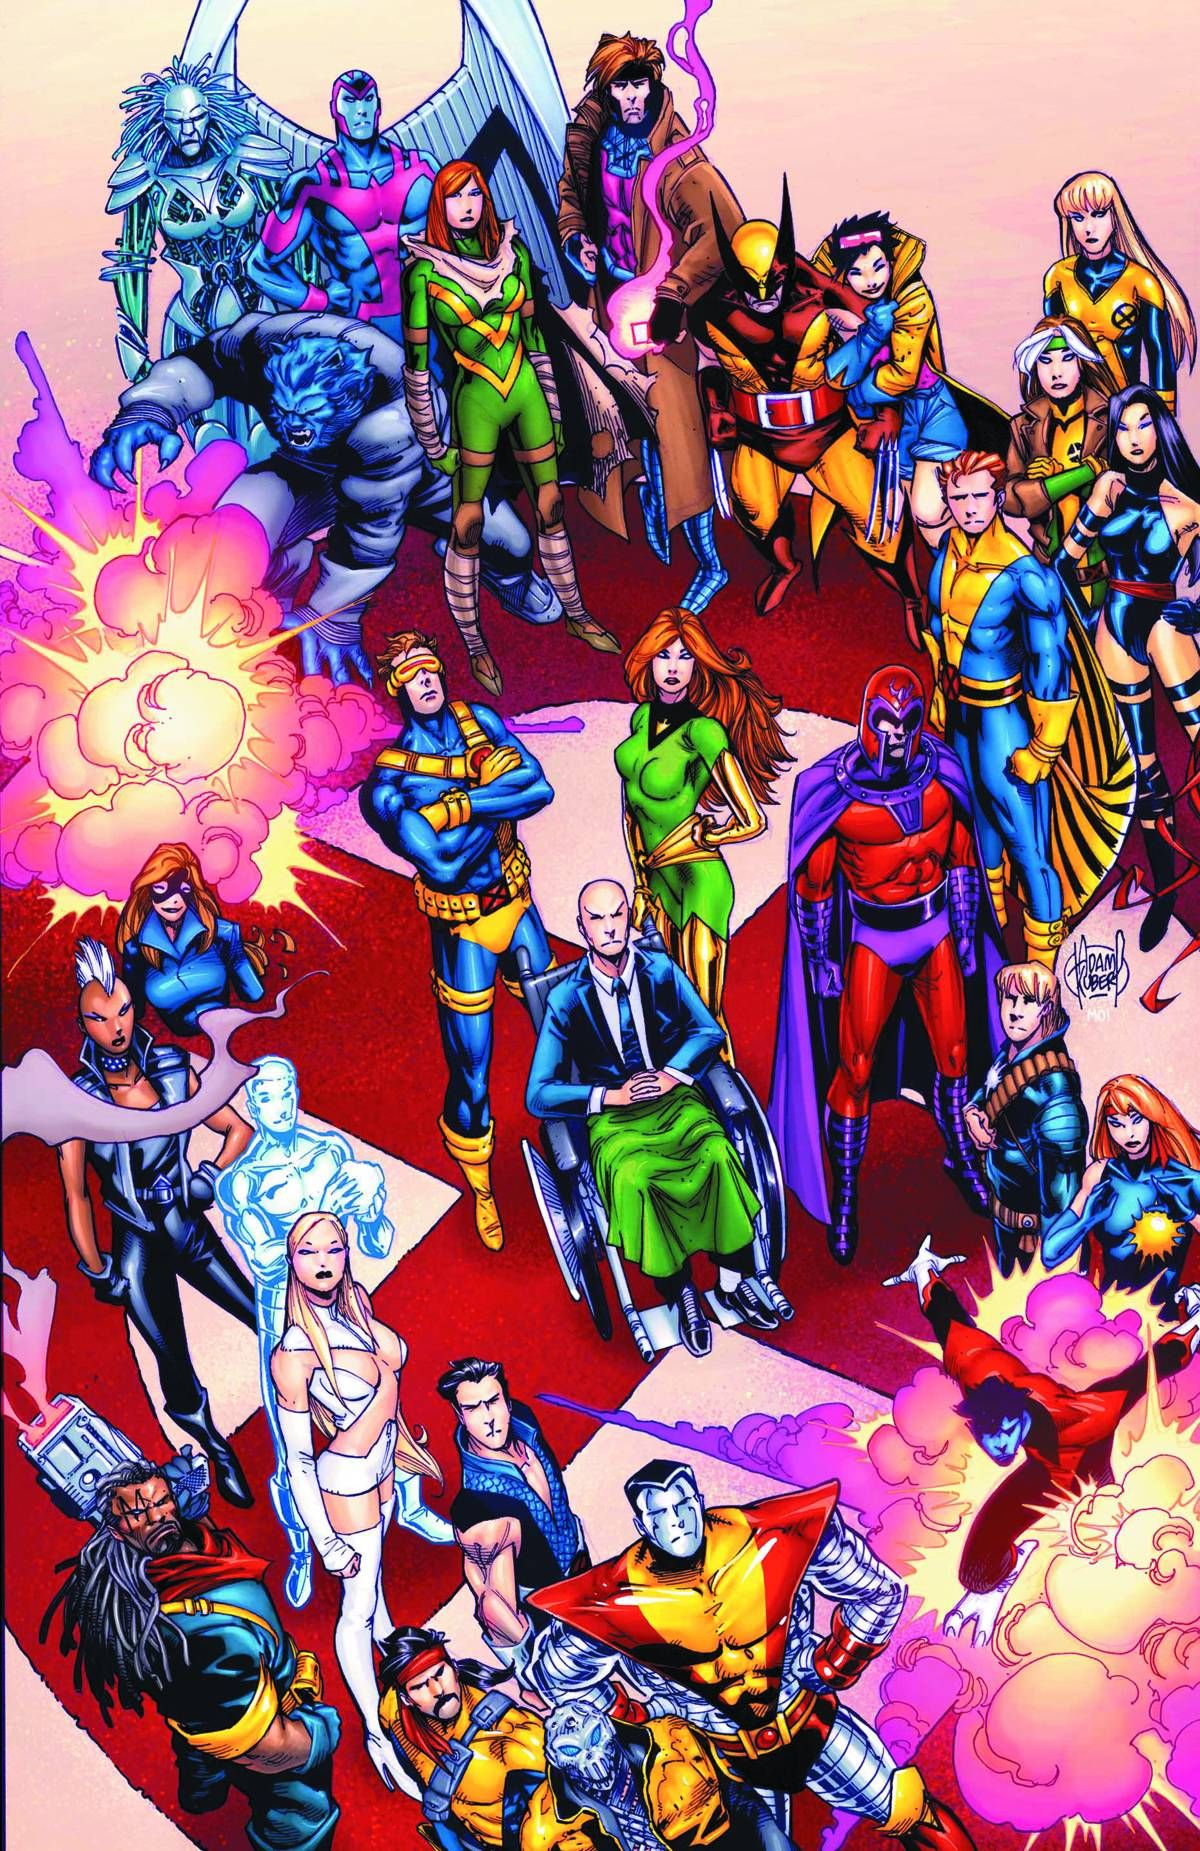 Final Issue At The End Of An Era Storm Puts A Team Together To Search For The Start Of The Next In The Fiel X Men Marvel Superheroes Superhero Comic